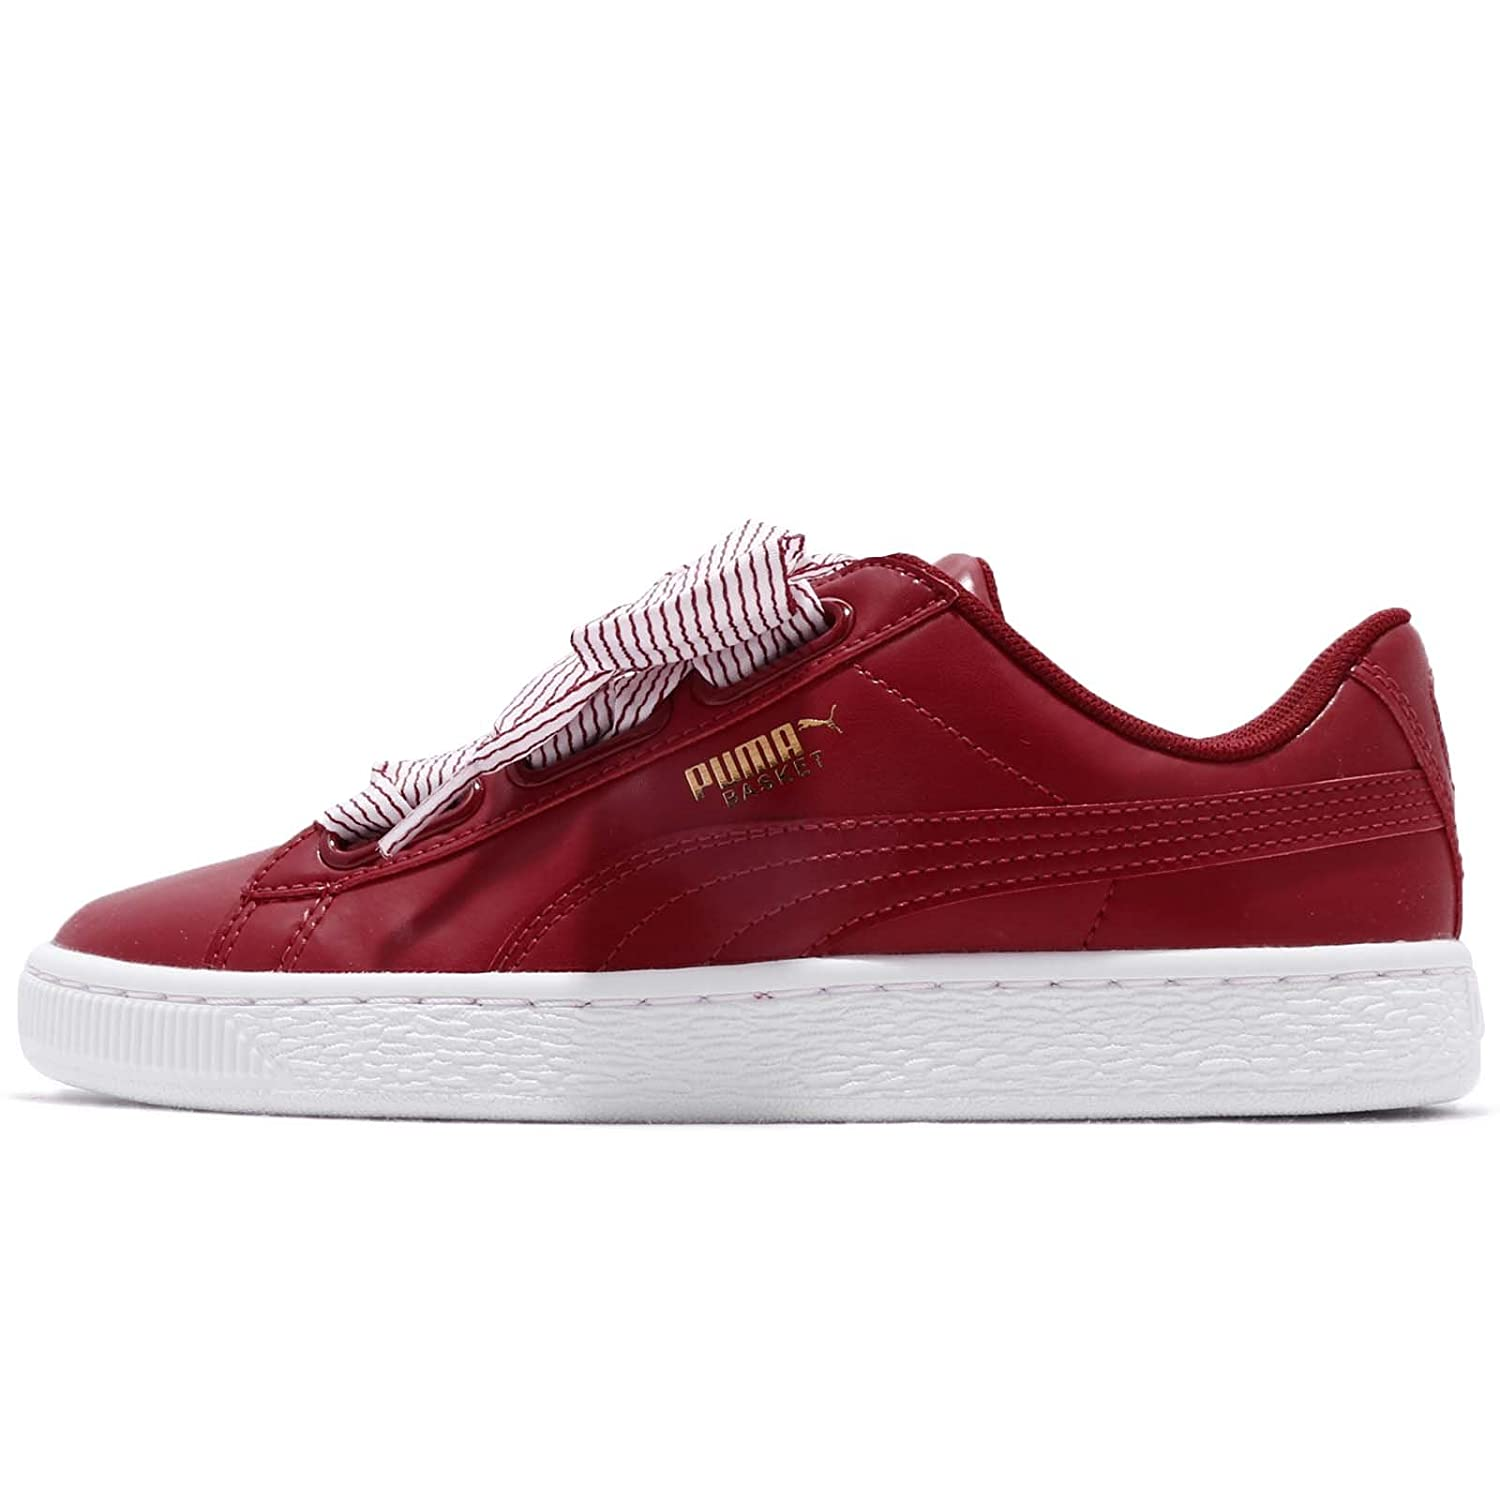 6e2570c5f0ef Puma Women s Basket Heart WN s Shell Pink Sneakers-5 UK India (38 EU)  (4059505053130)  Buy Online at Low Prices in India - Amazon.in